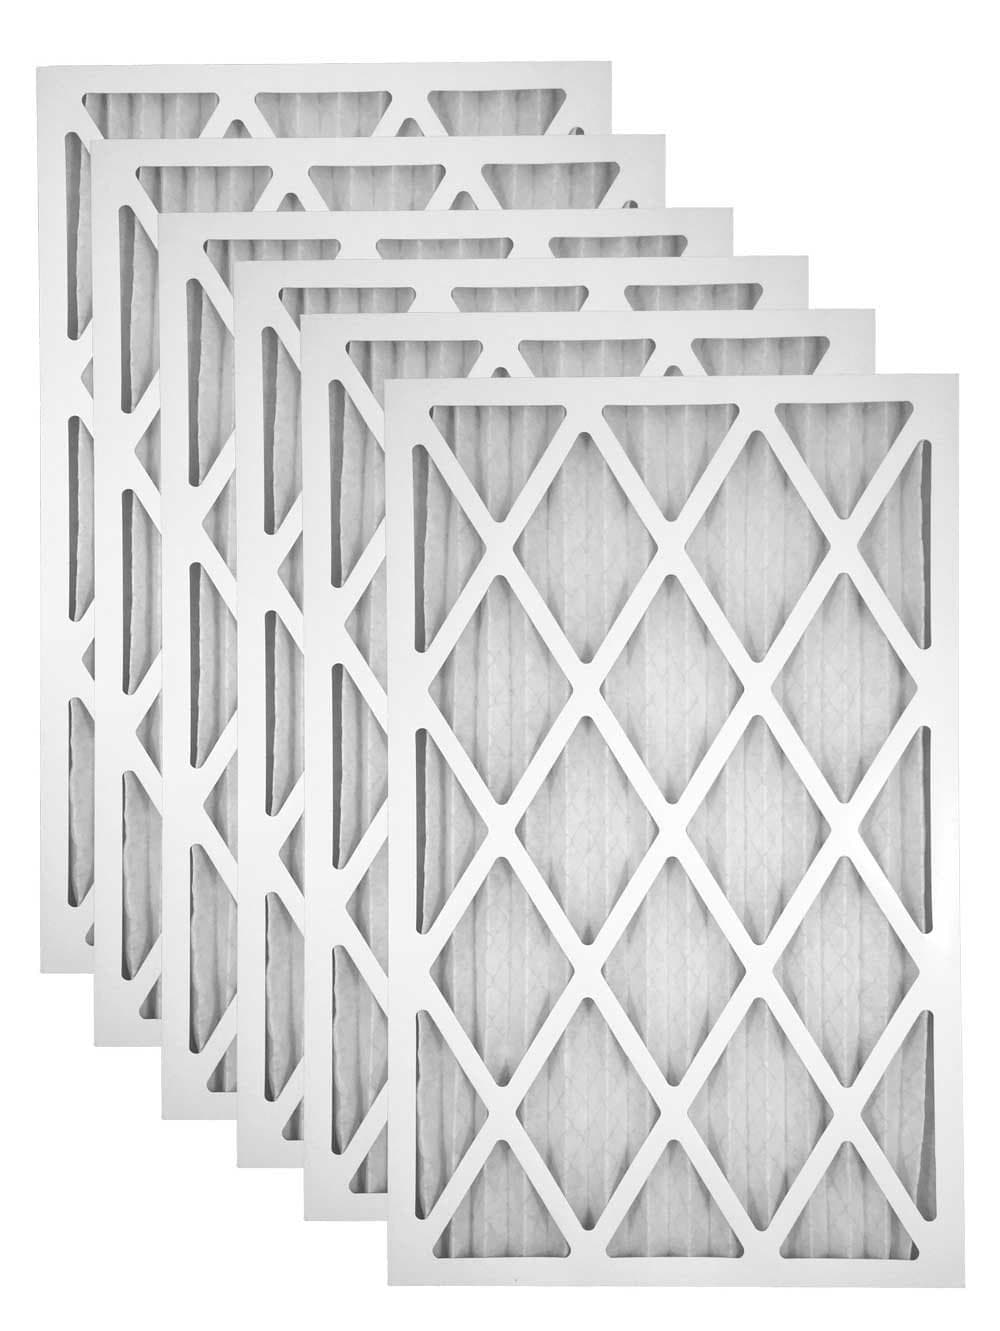 16x18x1 Merv 8 Pleated AC Furnace Filter - Case of 6